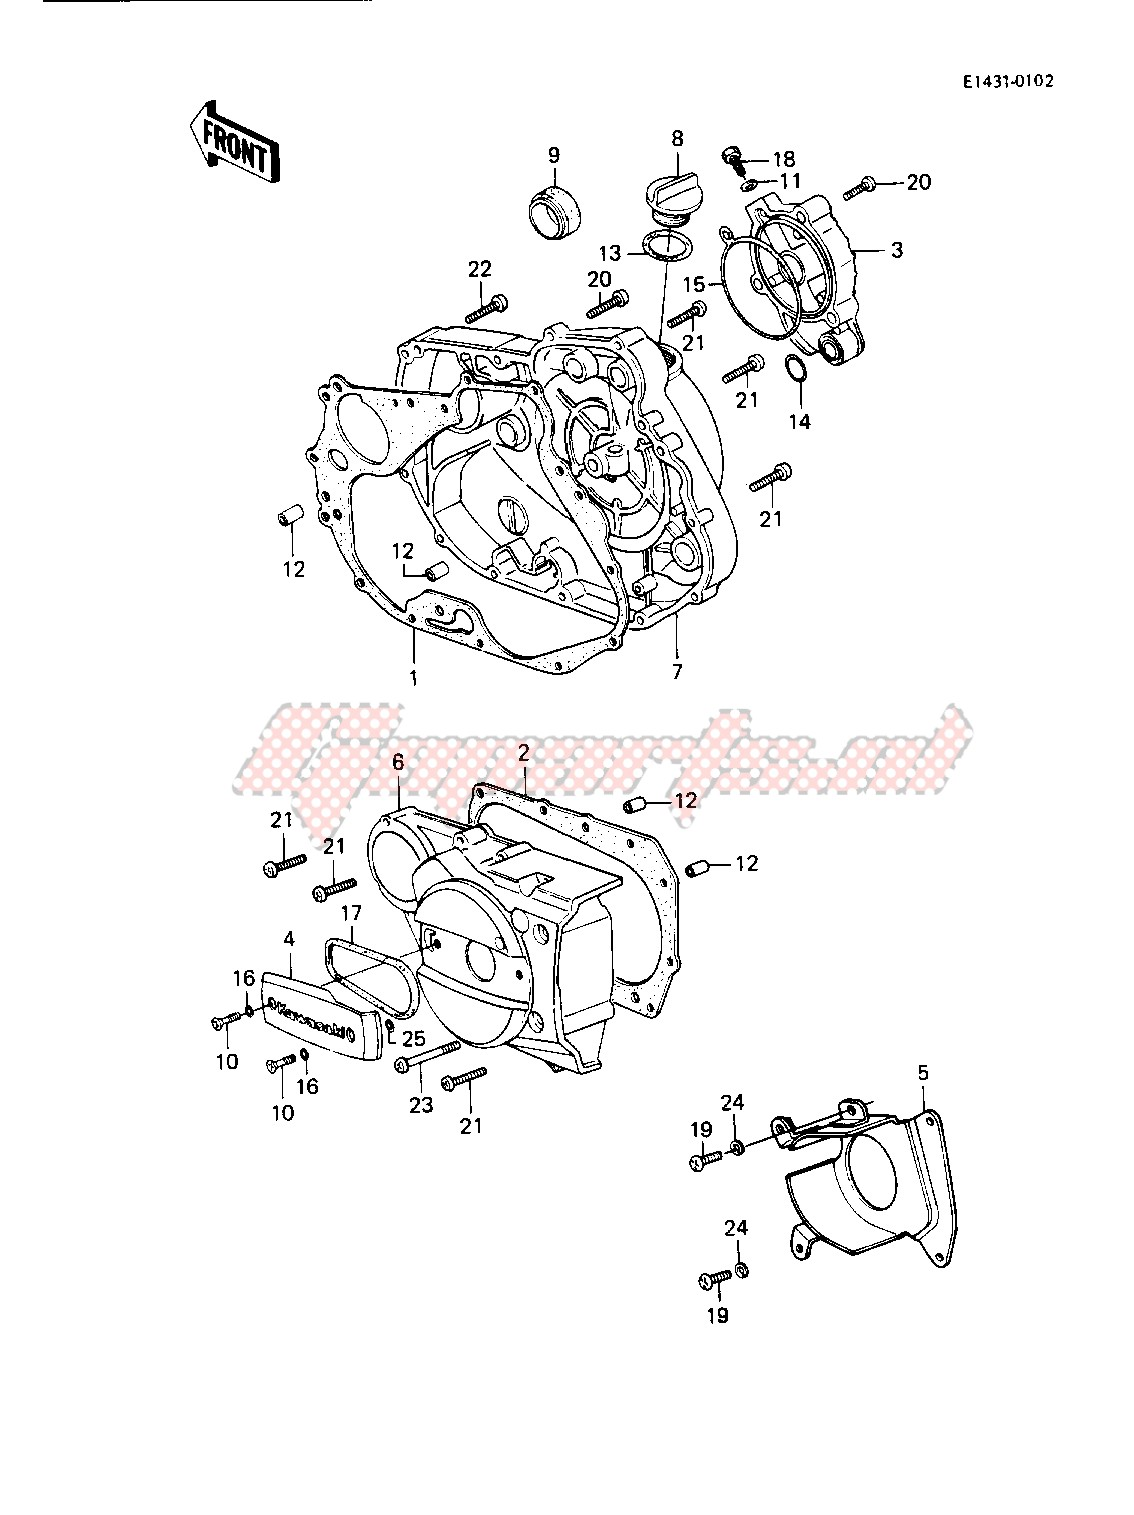 ENGINE COVERS image